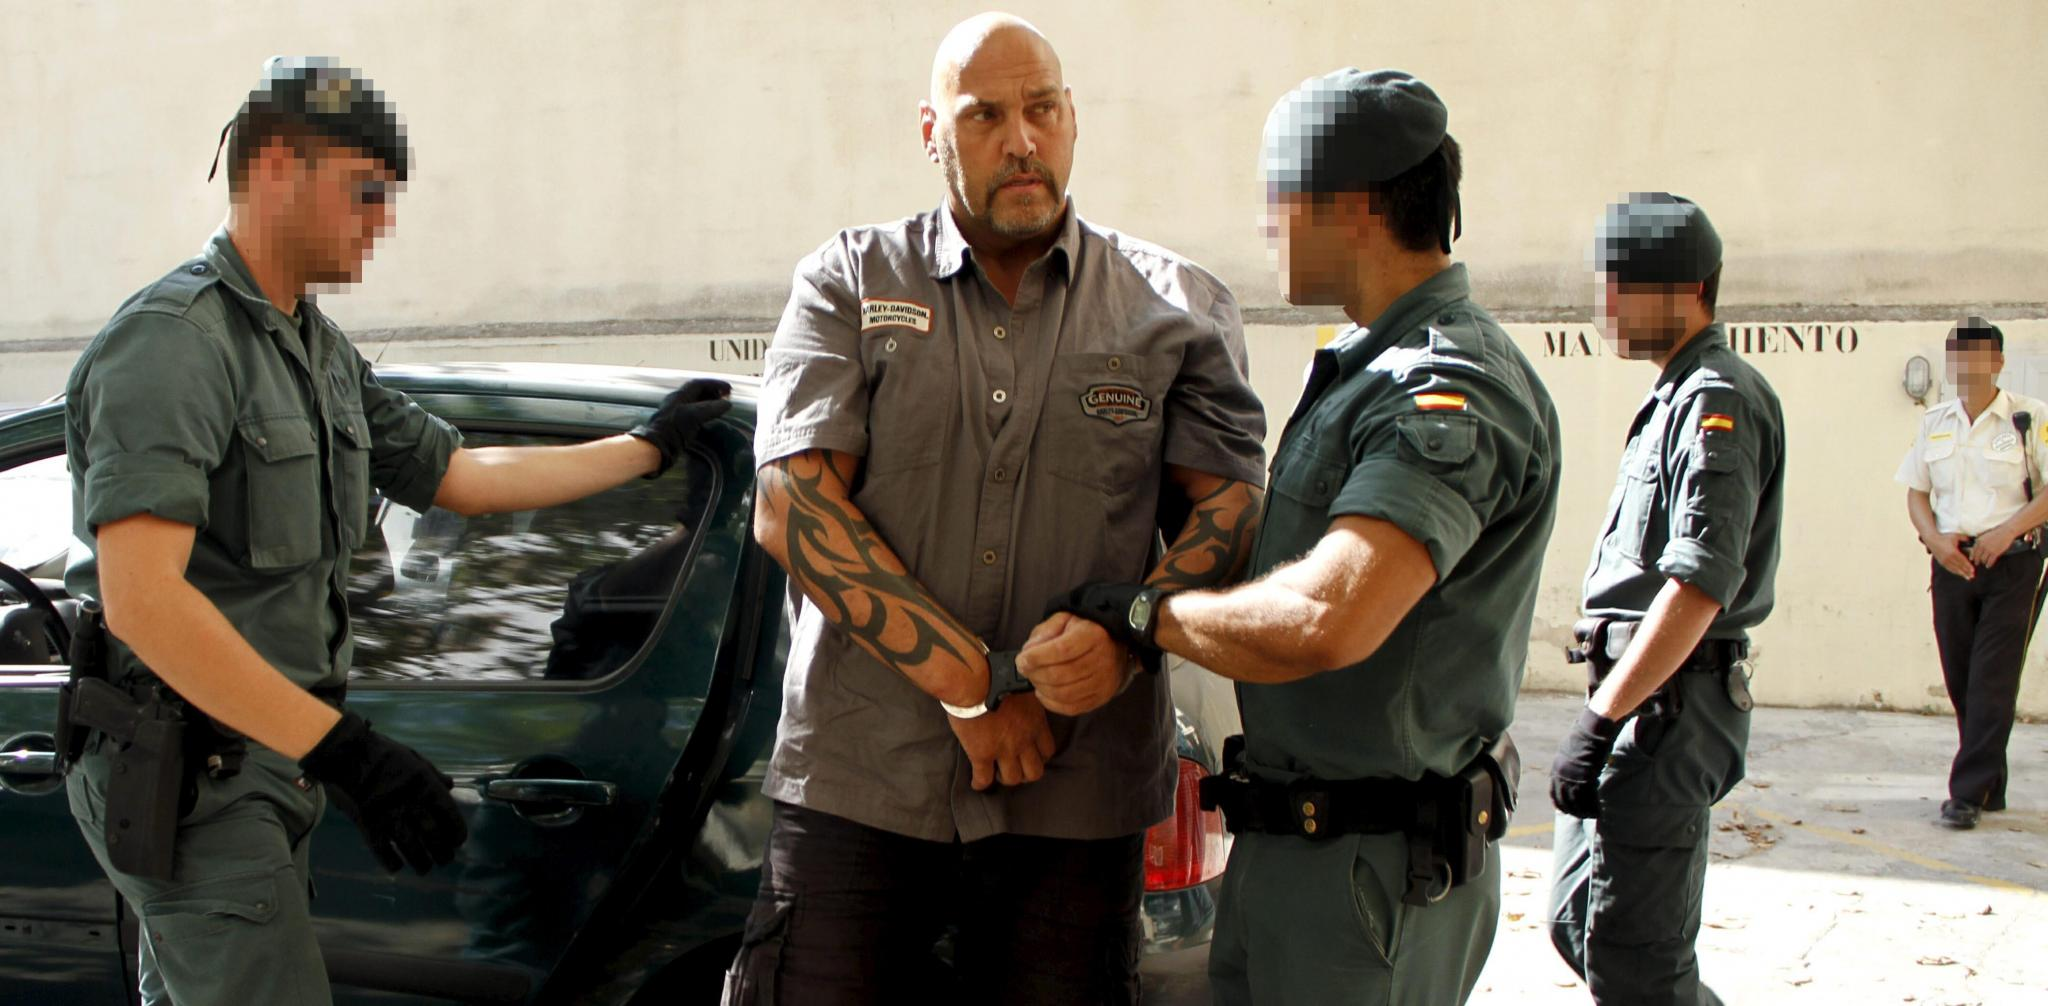 Hell Angels arrested in Majorca to stand trial